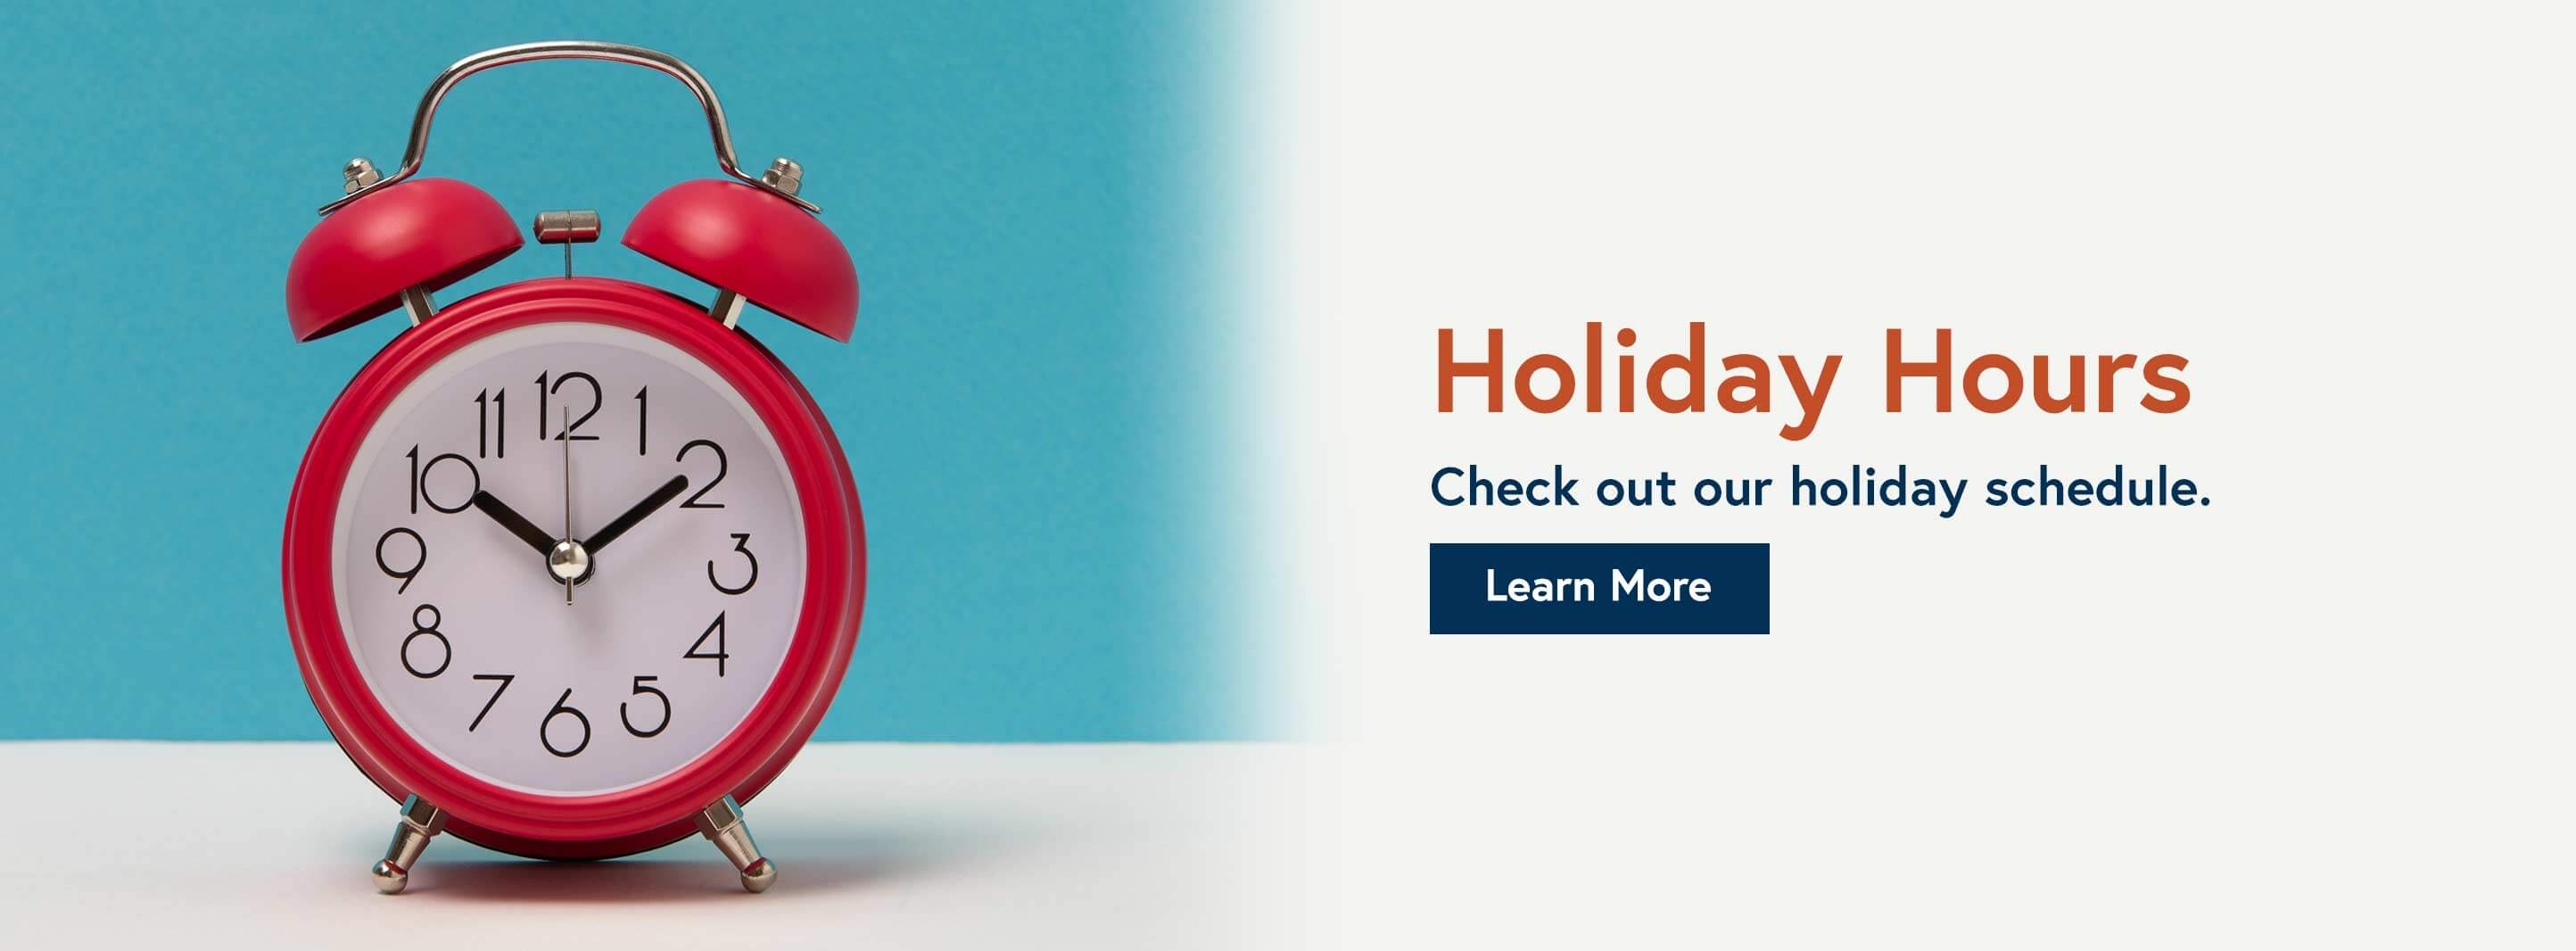 Holiday hours check out our holiday schedule. Learn More